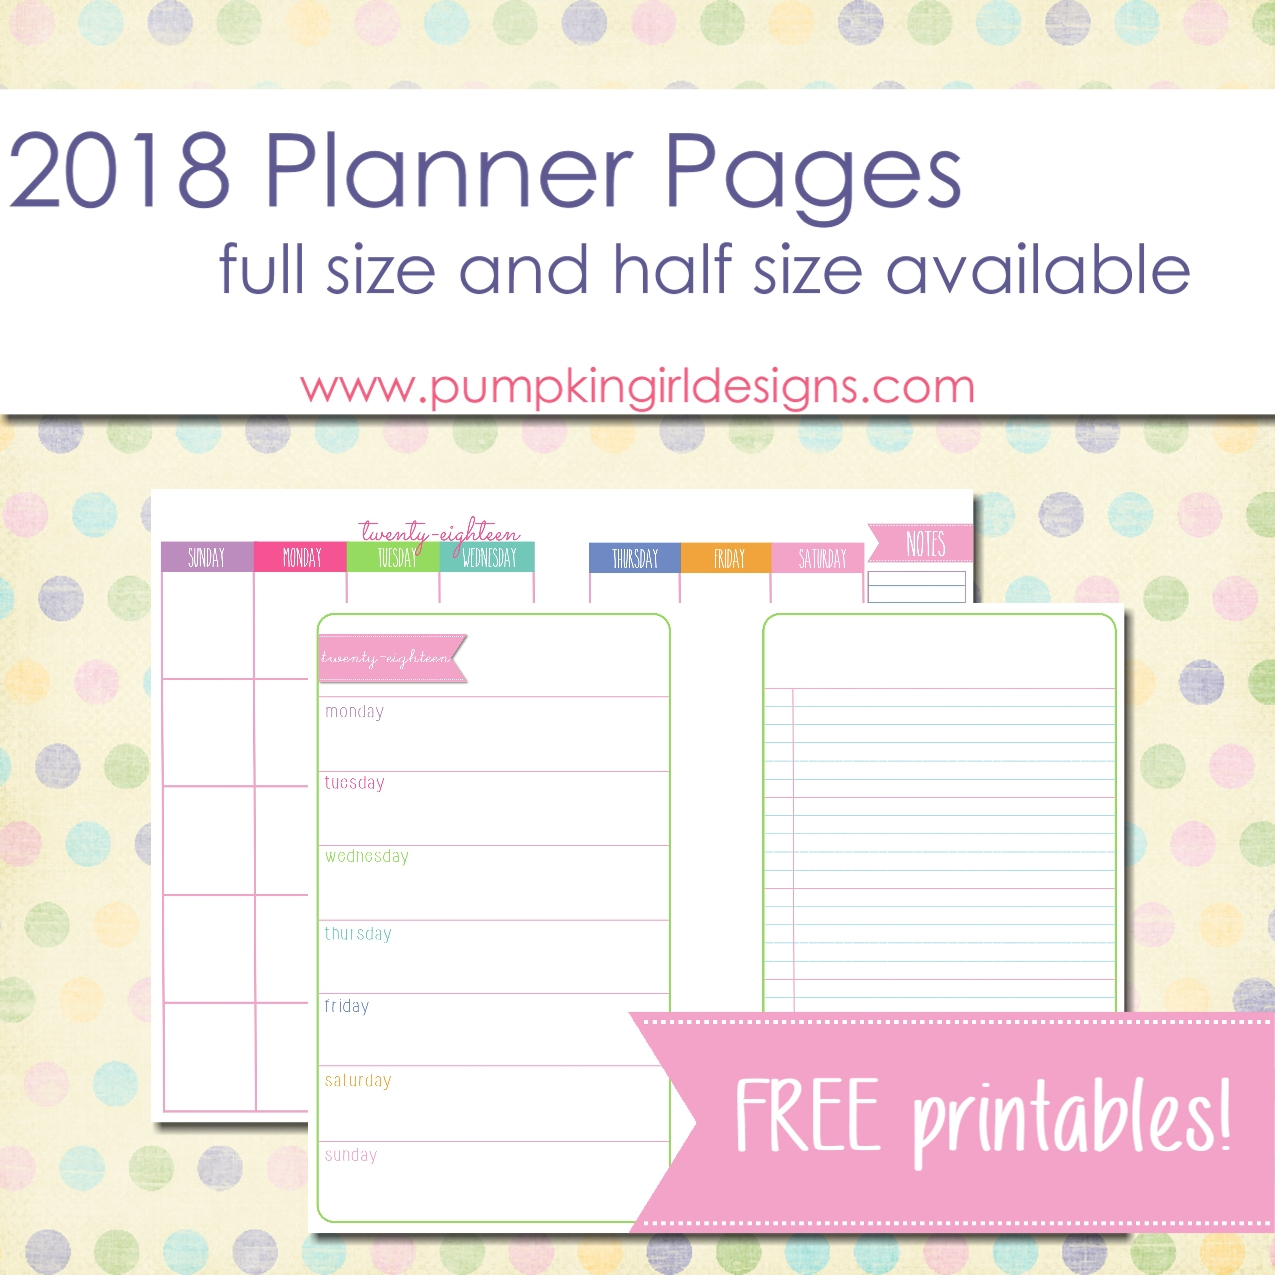 Justlorri@gmail | Pumpkingirl Designs - Free Printable 5.5 X8 5 Planner Pages